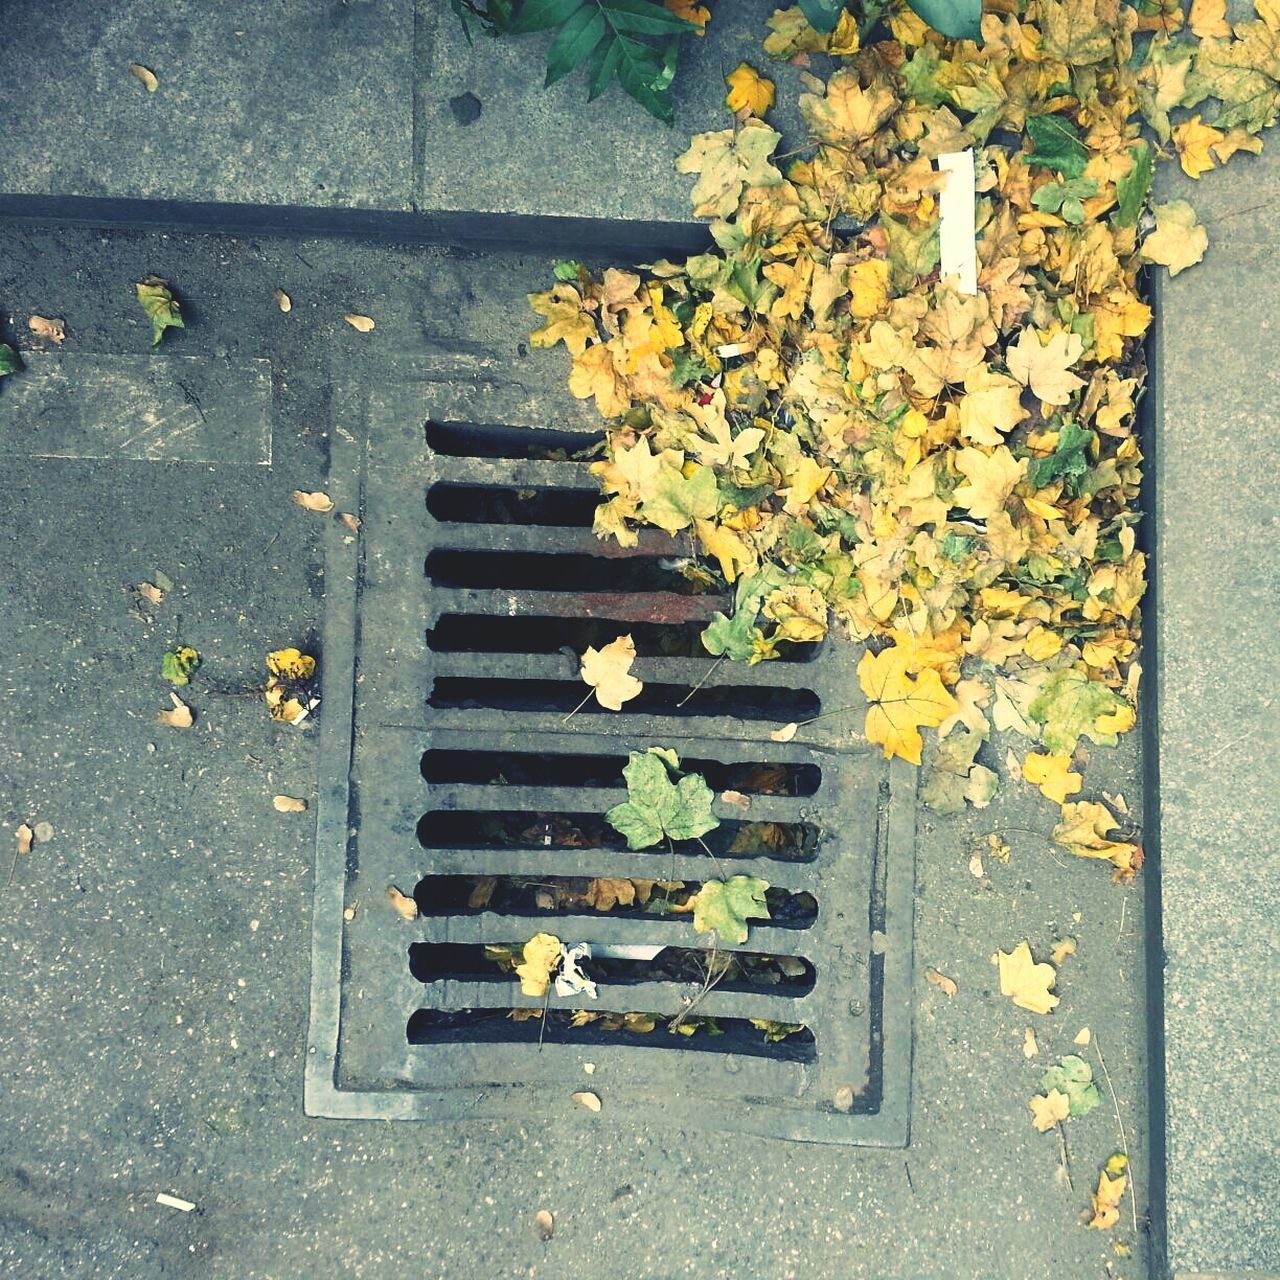 High Angle View Of Leaves By Sewage